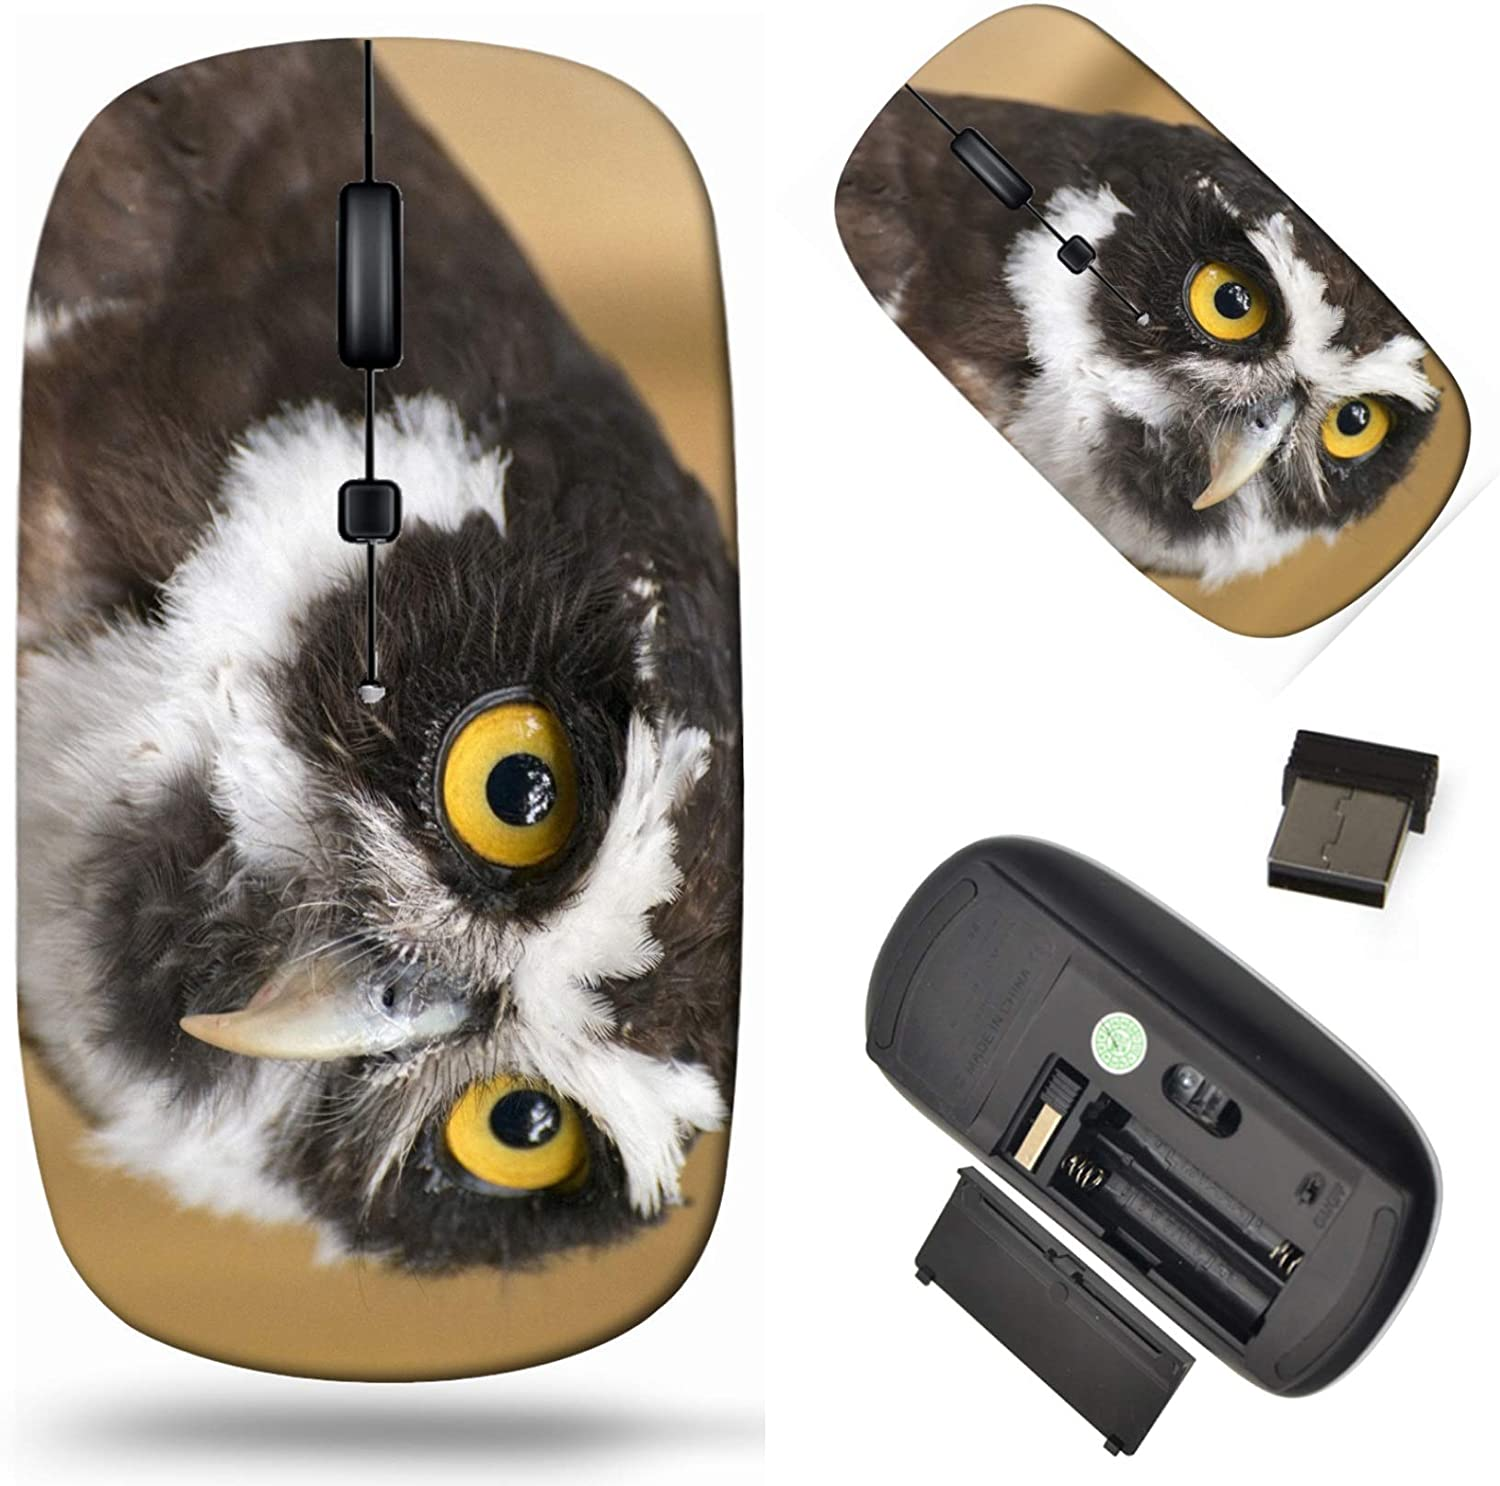 Wireless Computer Mouse 2.4G with Laptop We OFFer at cheap prices Cor USB Fresno Mall Receiver